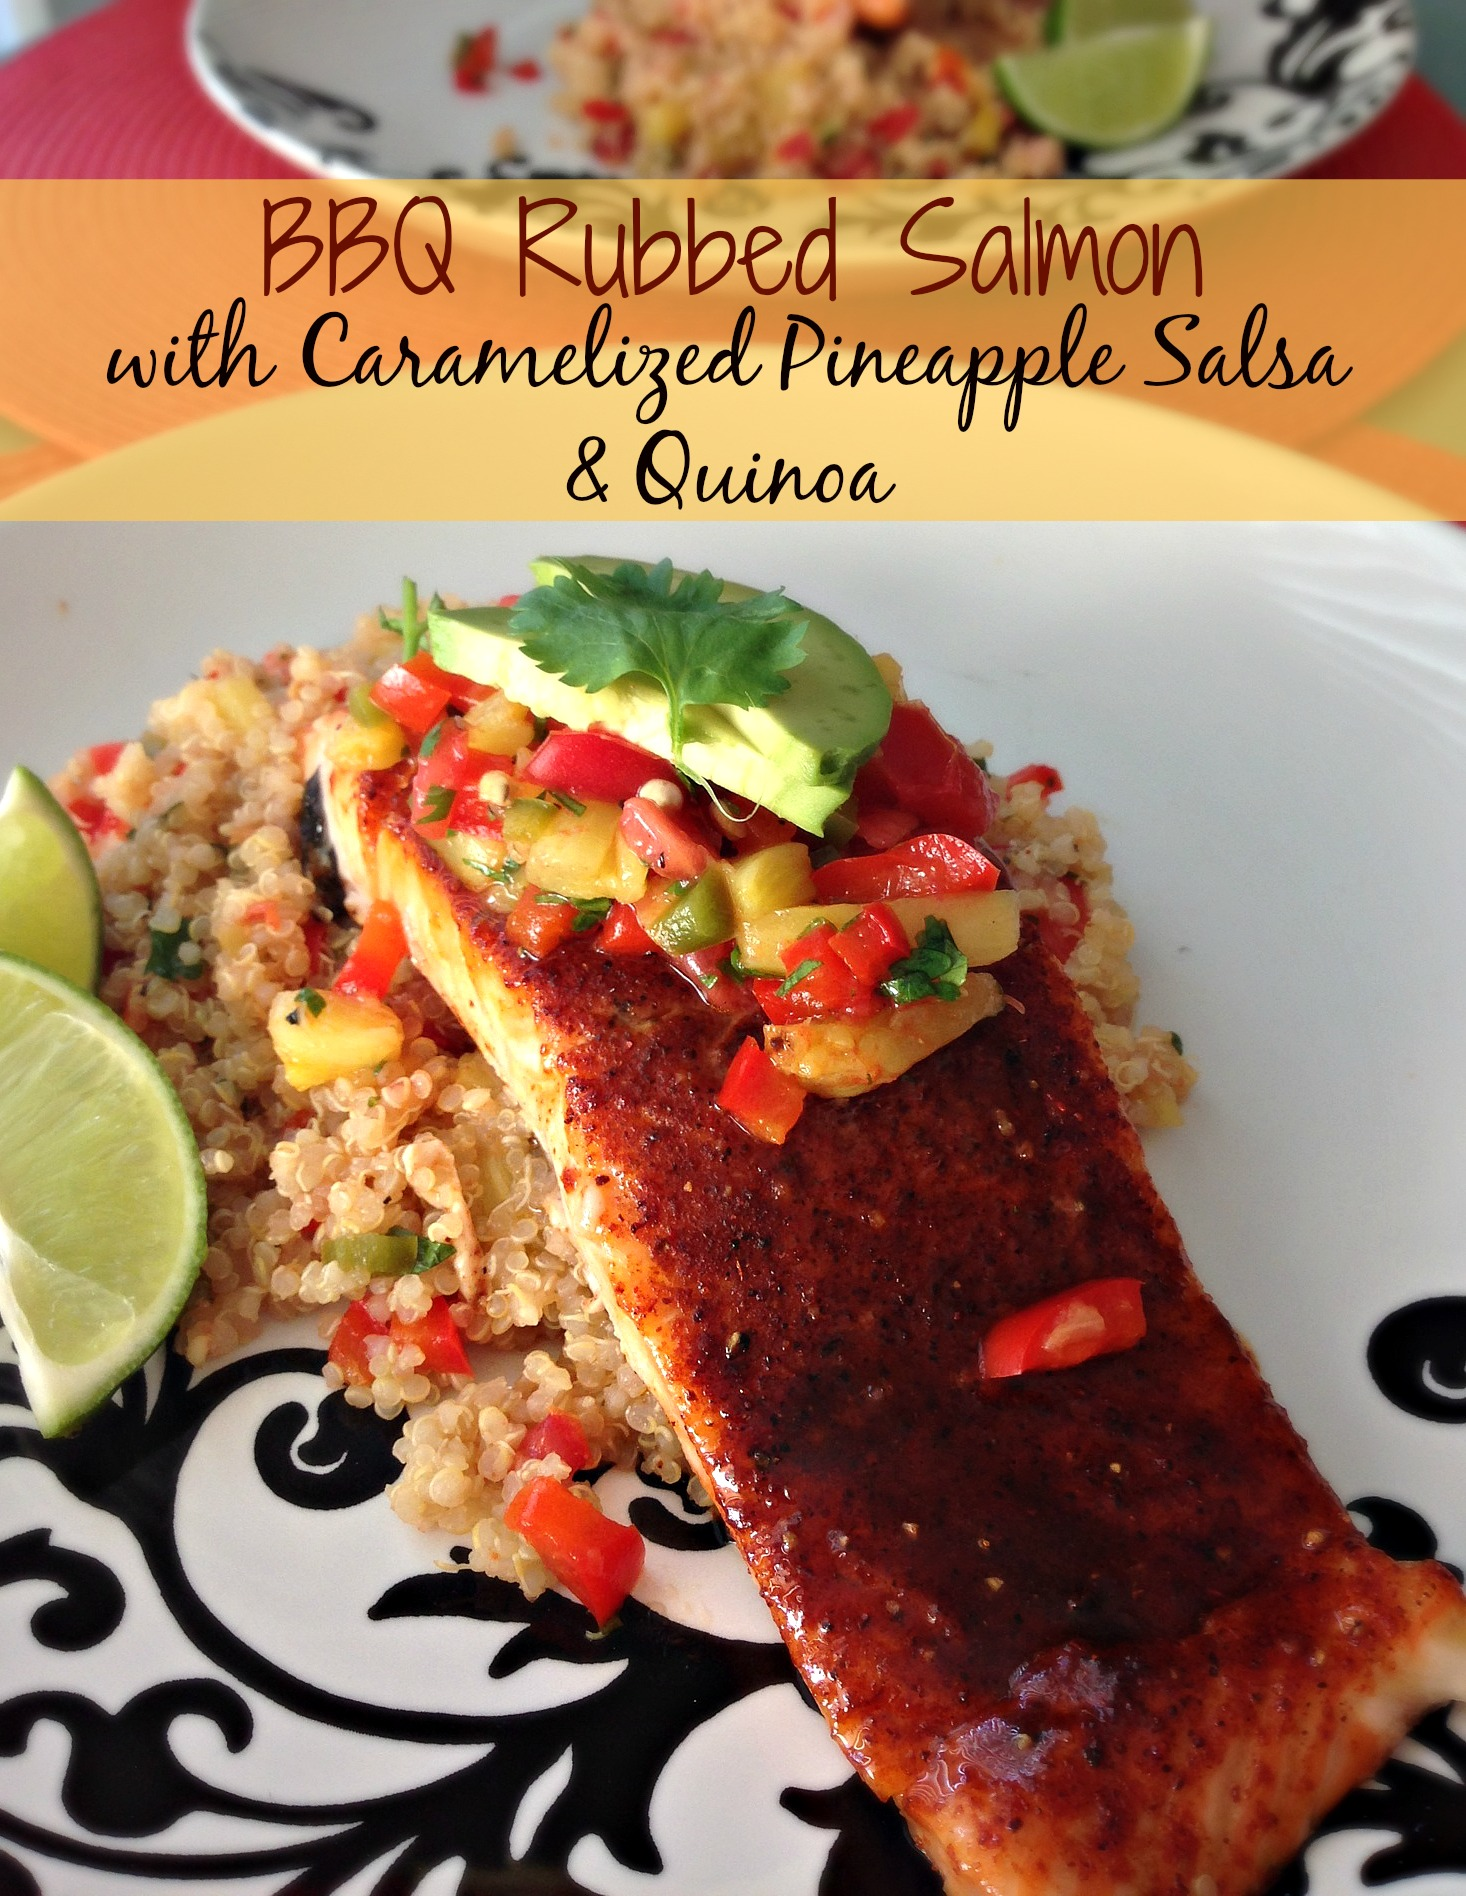 BBQ Rubbed Salmon with Caramelized Pineapple Salsa & Quinoa